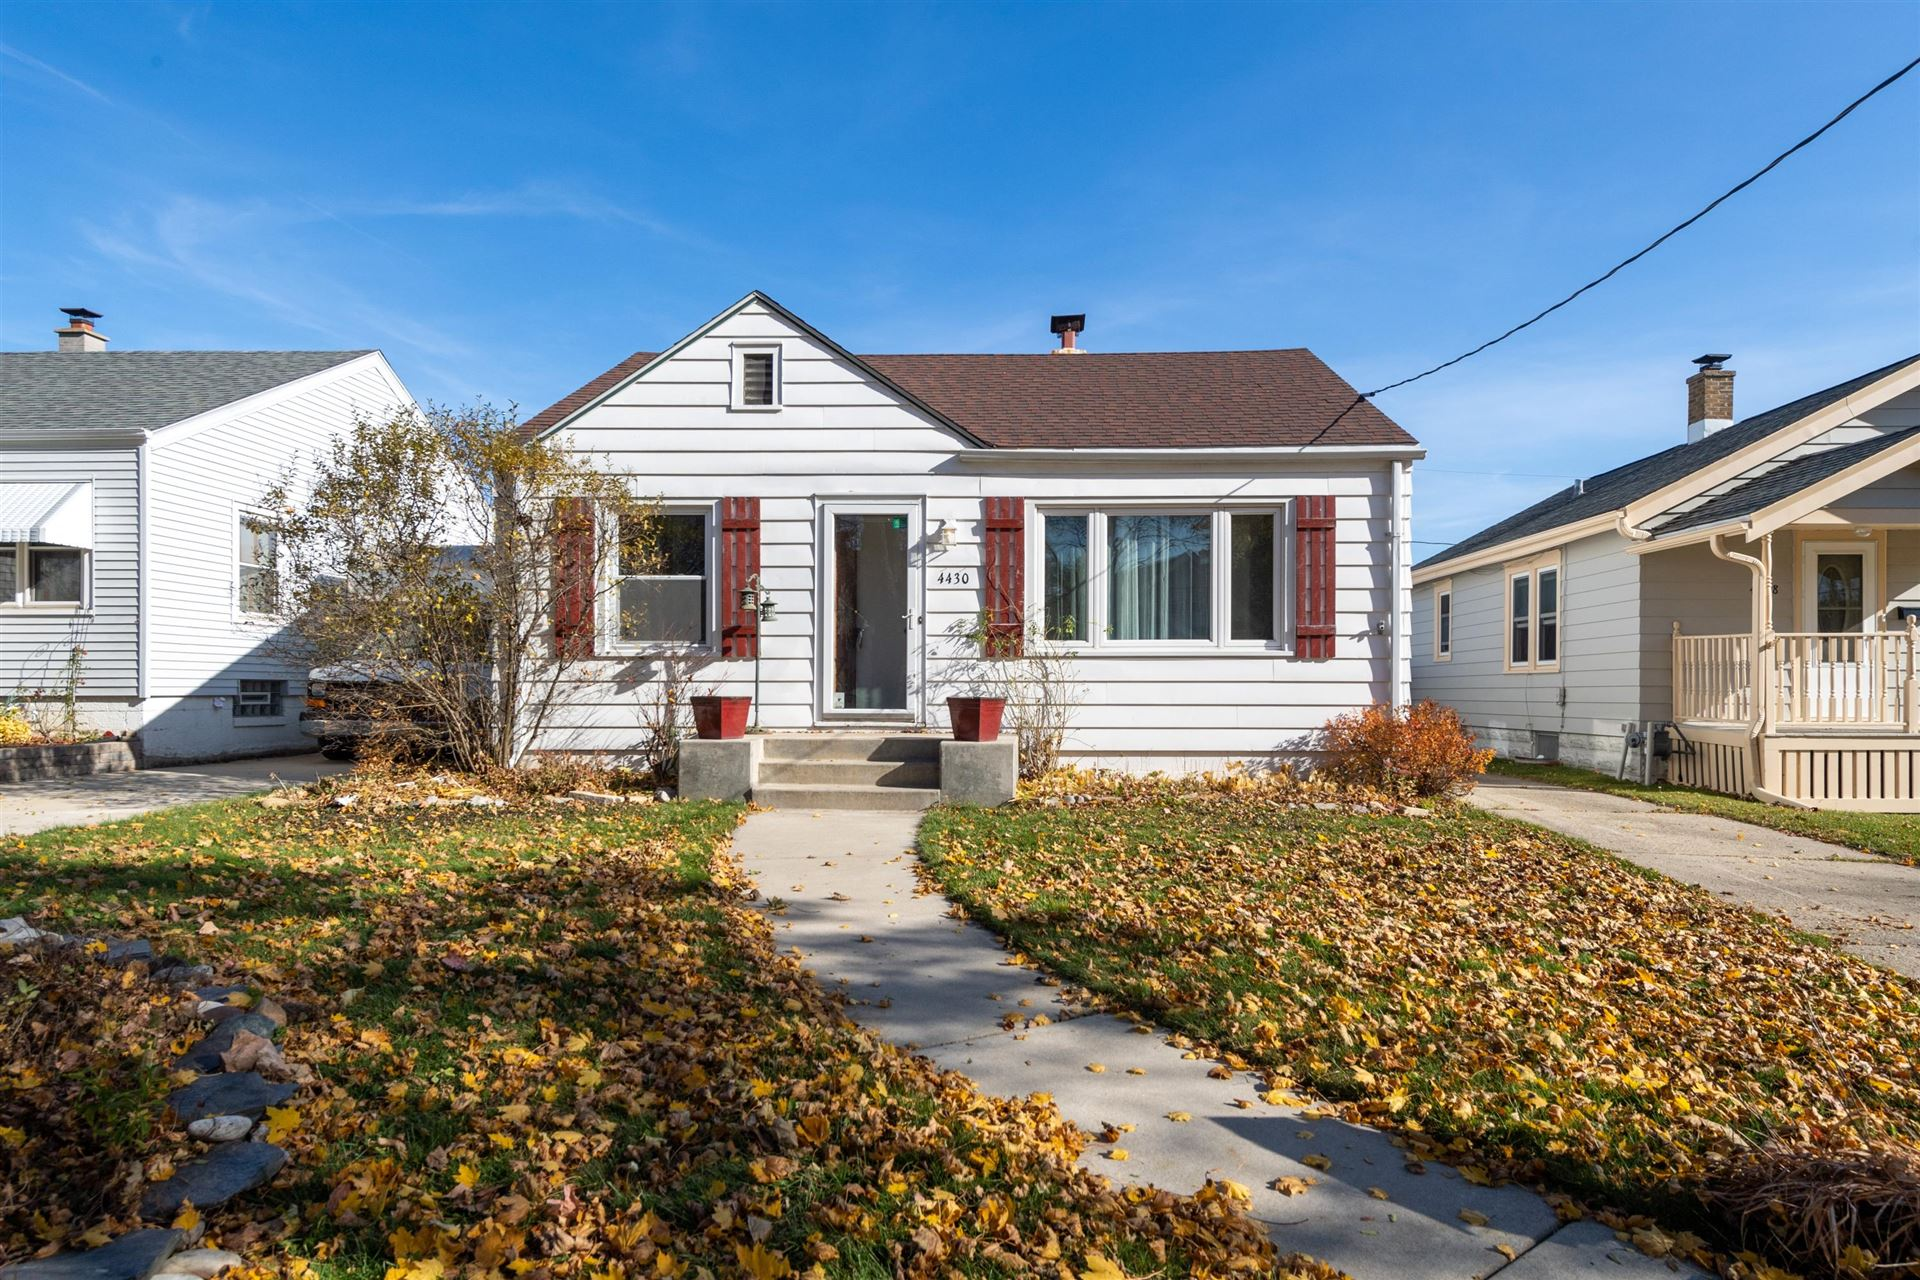 4430 S Quincy Ave, Milwaukee, WI 53207 - #: 1717966